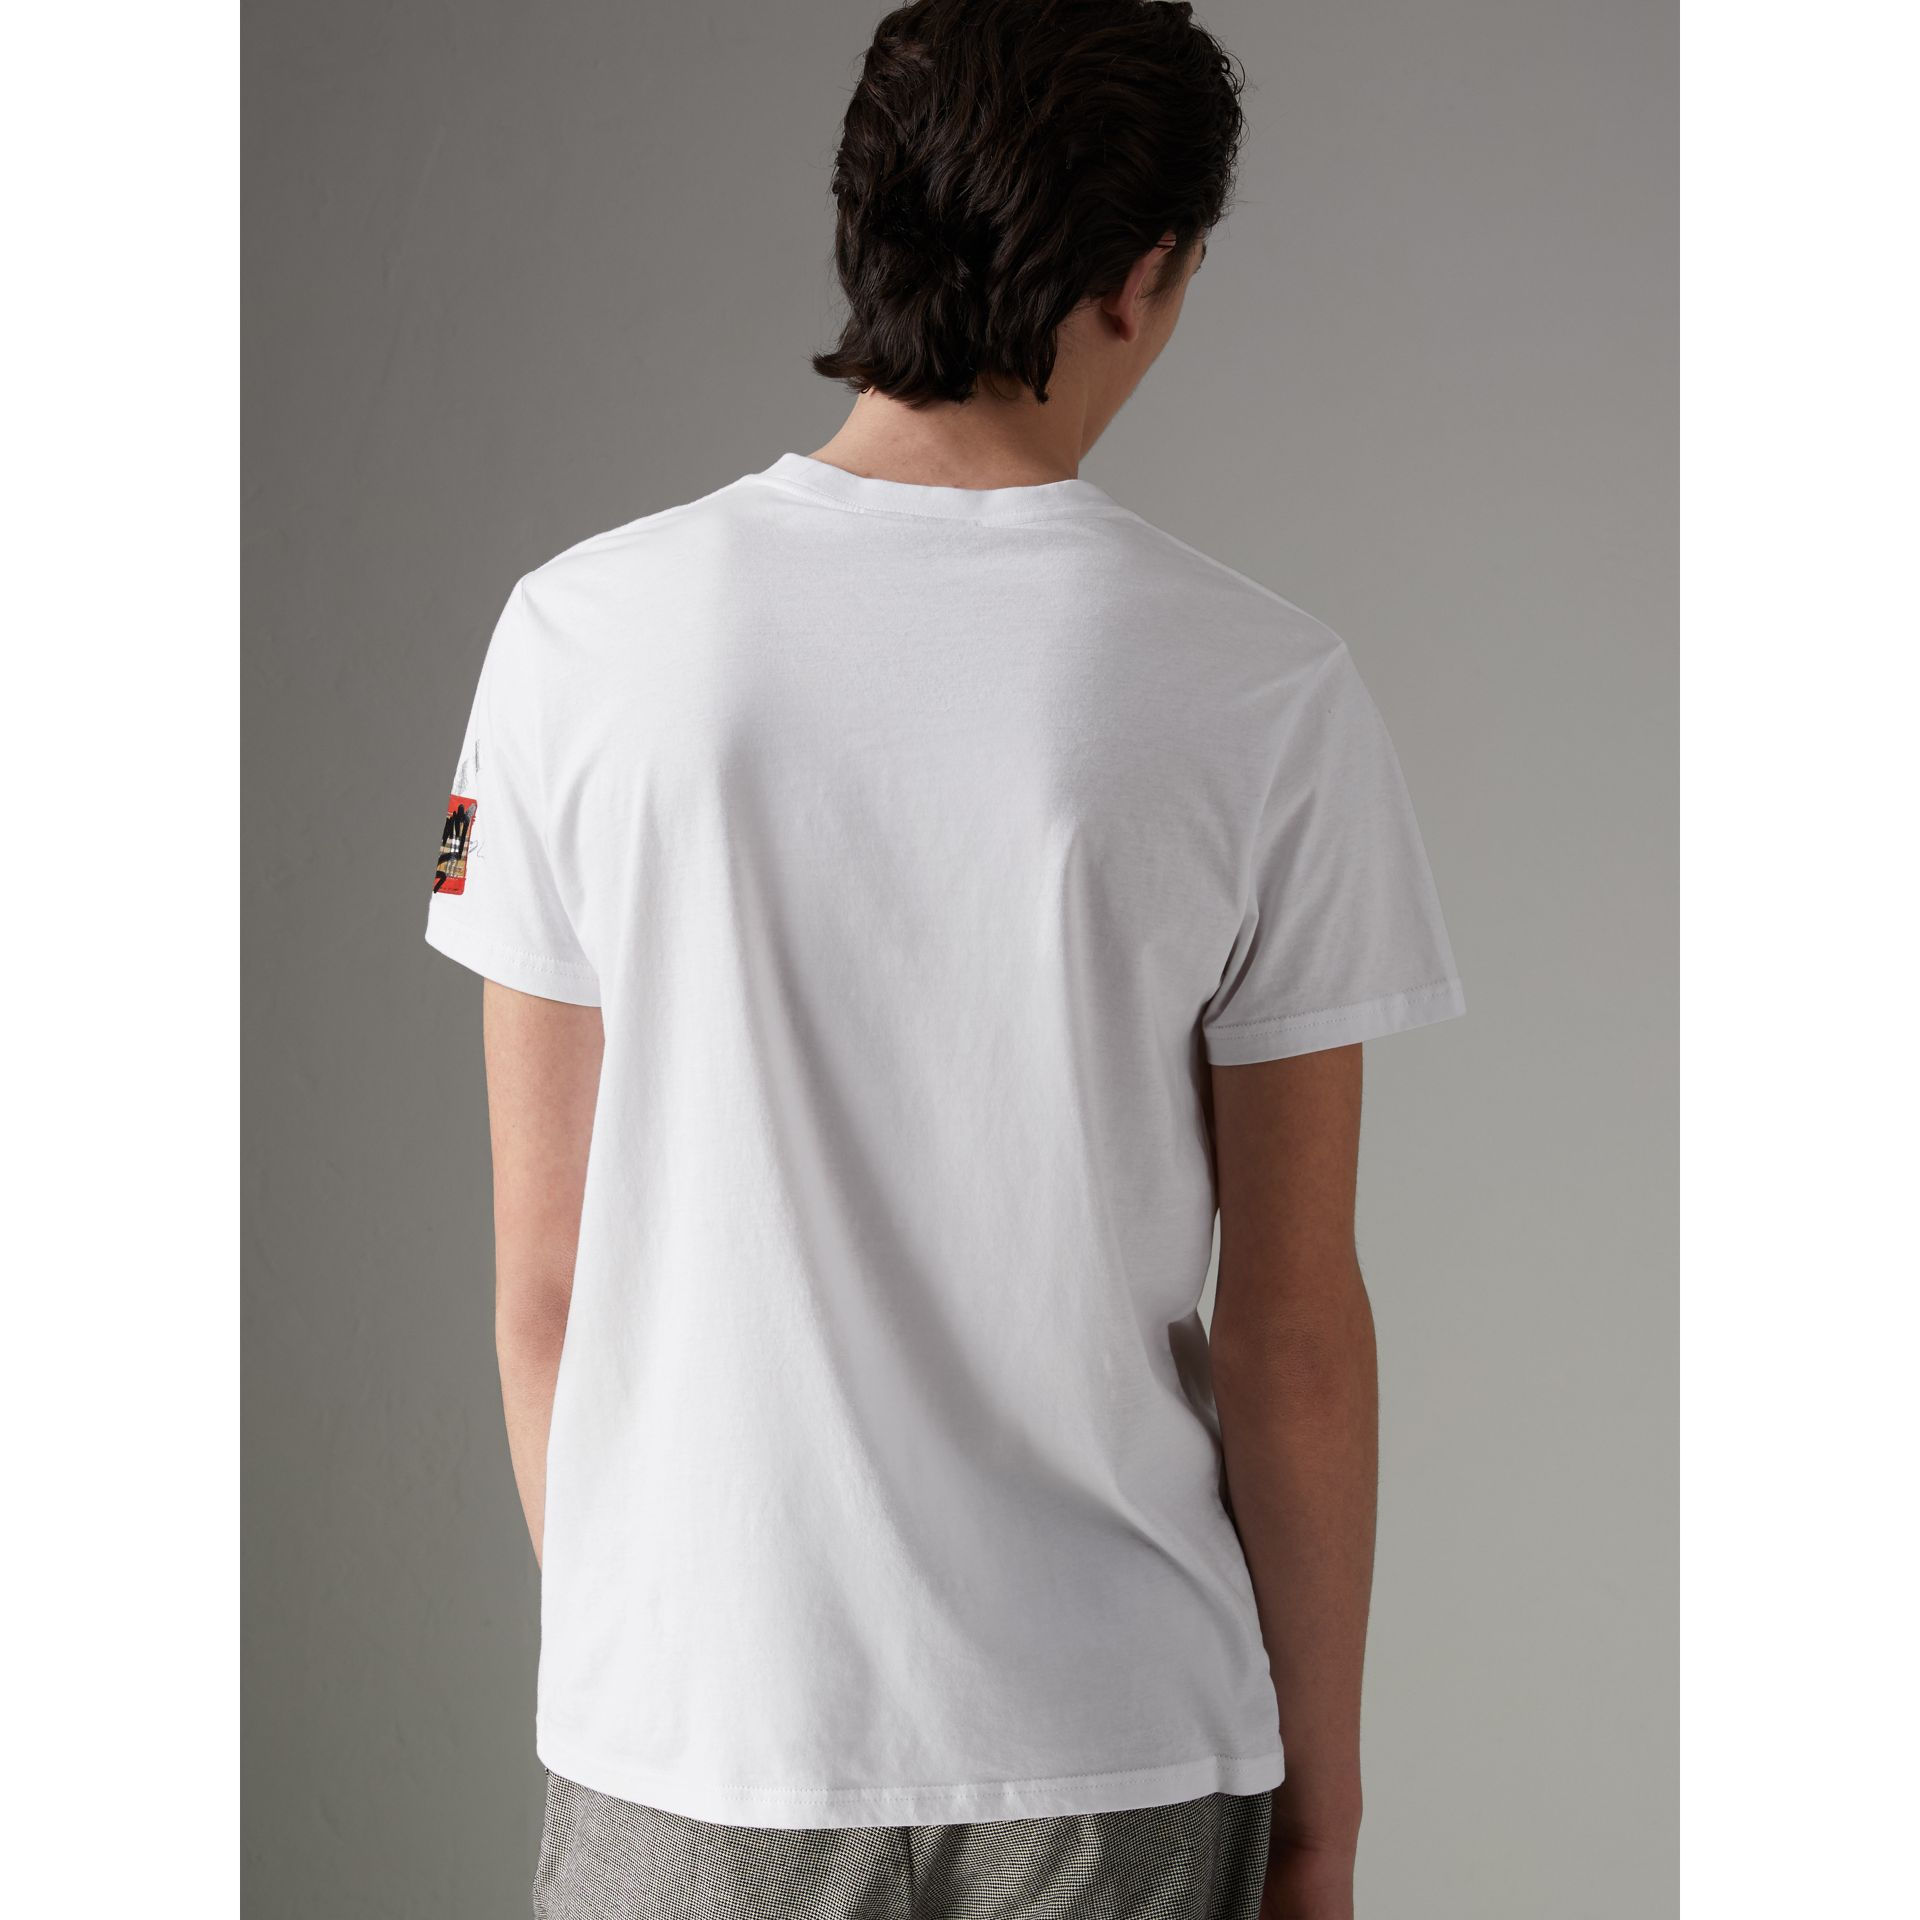 Graffitied Ticket Print T-shirt in White - Men | Burberry United Kingdom - gallery image 2